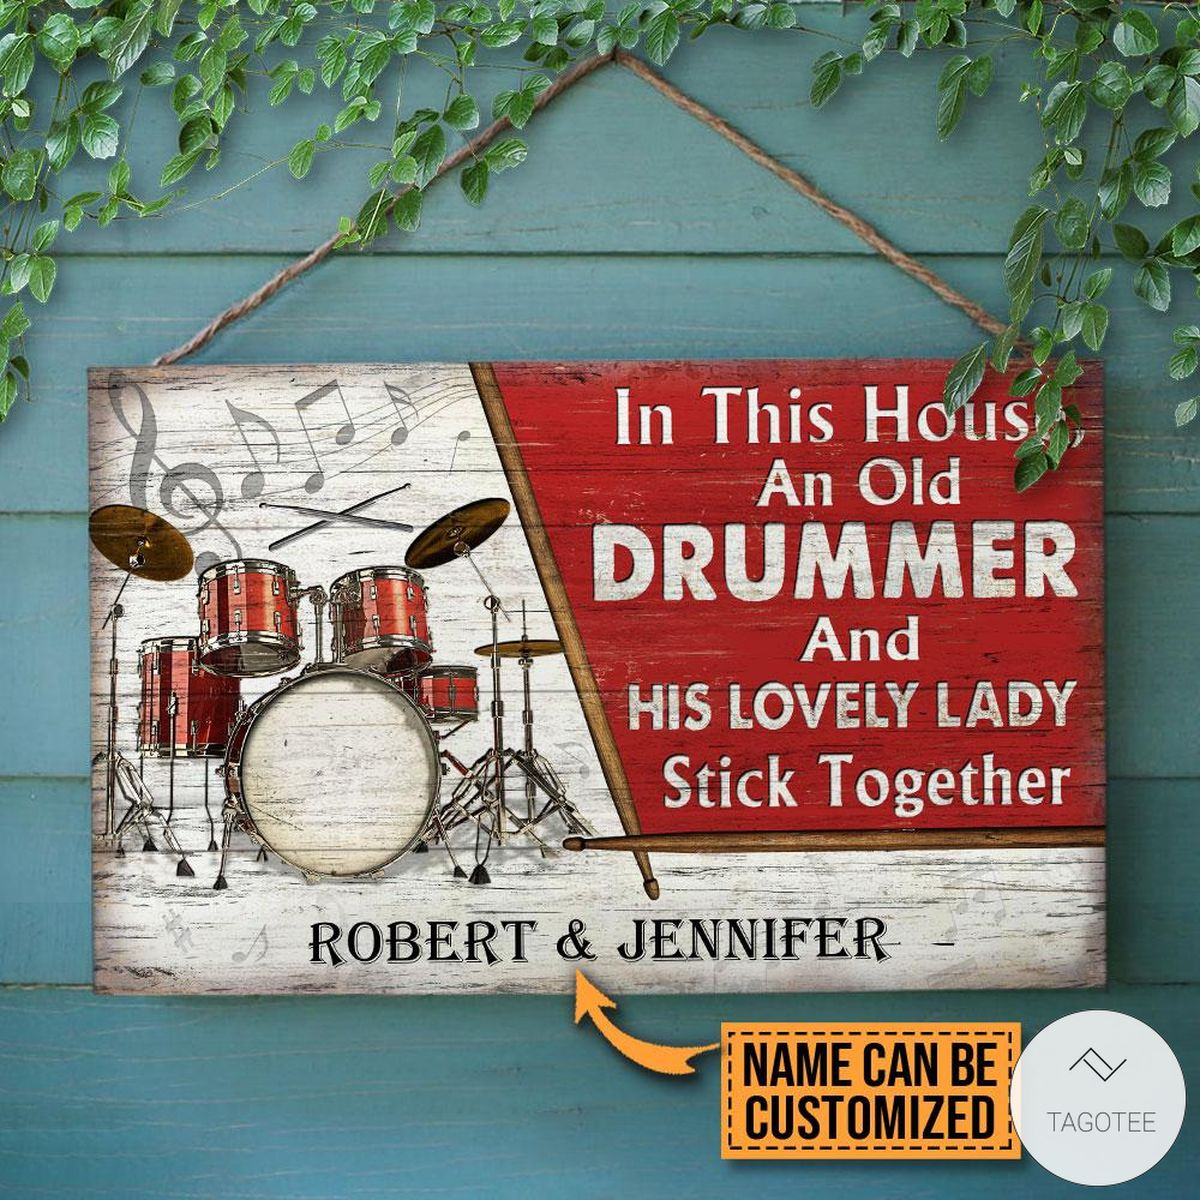 Personalized Drum In This House An Old Drummer And His Lovely Lady Stick Together Rectangle Wood Sign